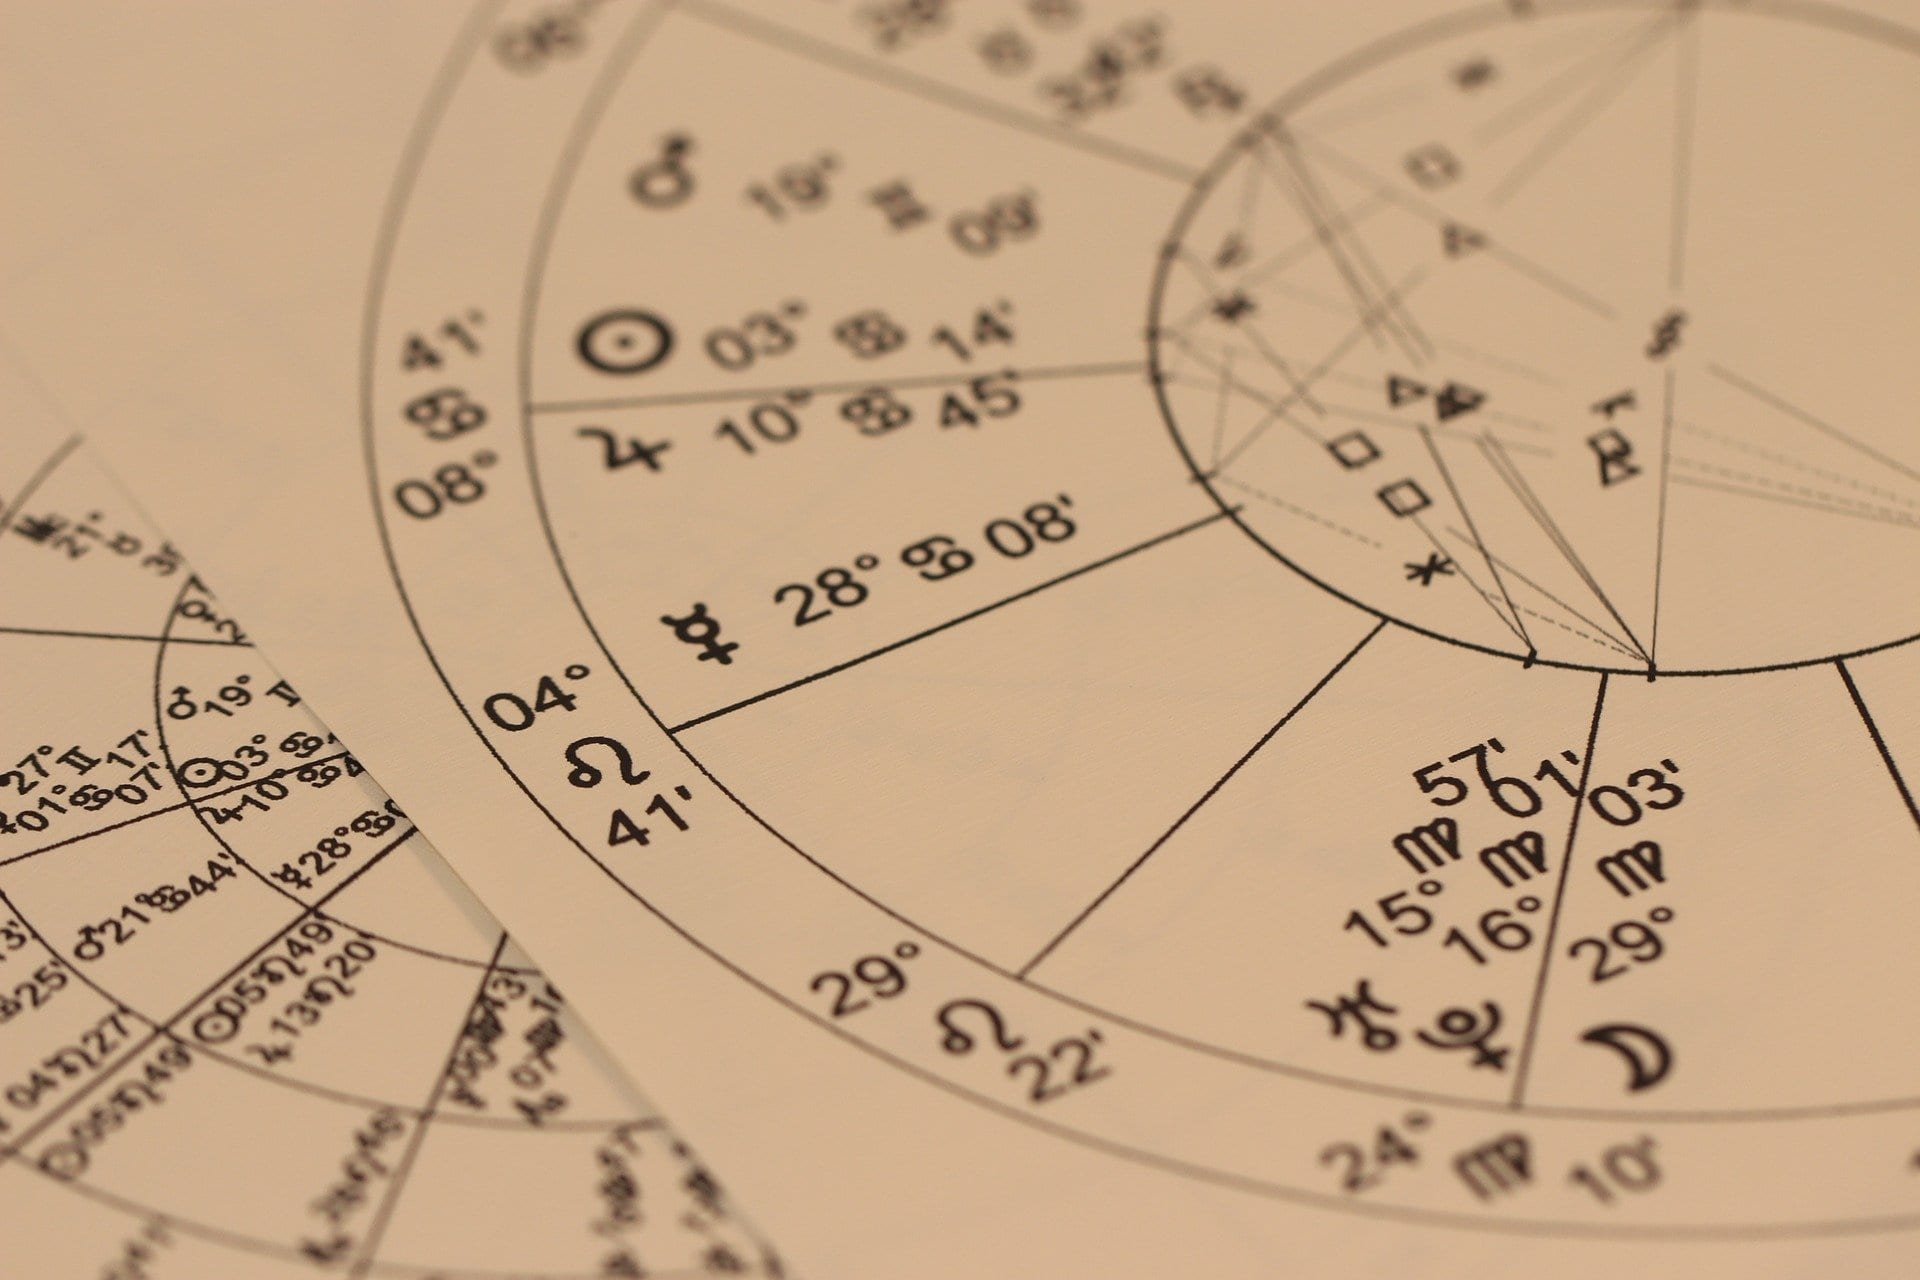 2021 Horoscope Yearly Predictions For Every Zodiac Sign regarding 2021 Rut Prediction